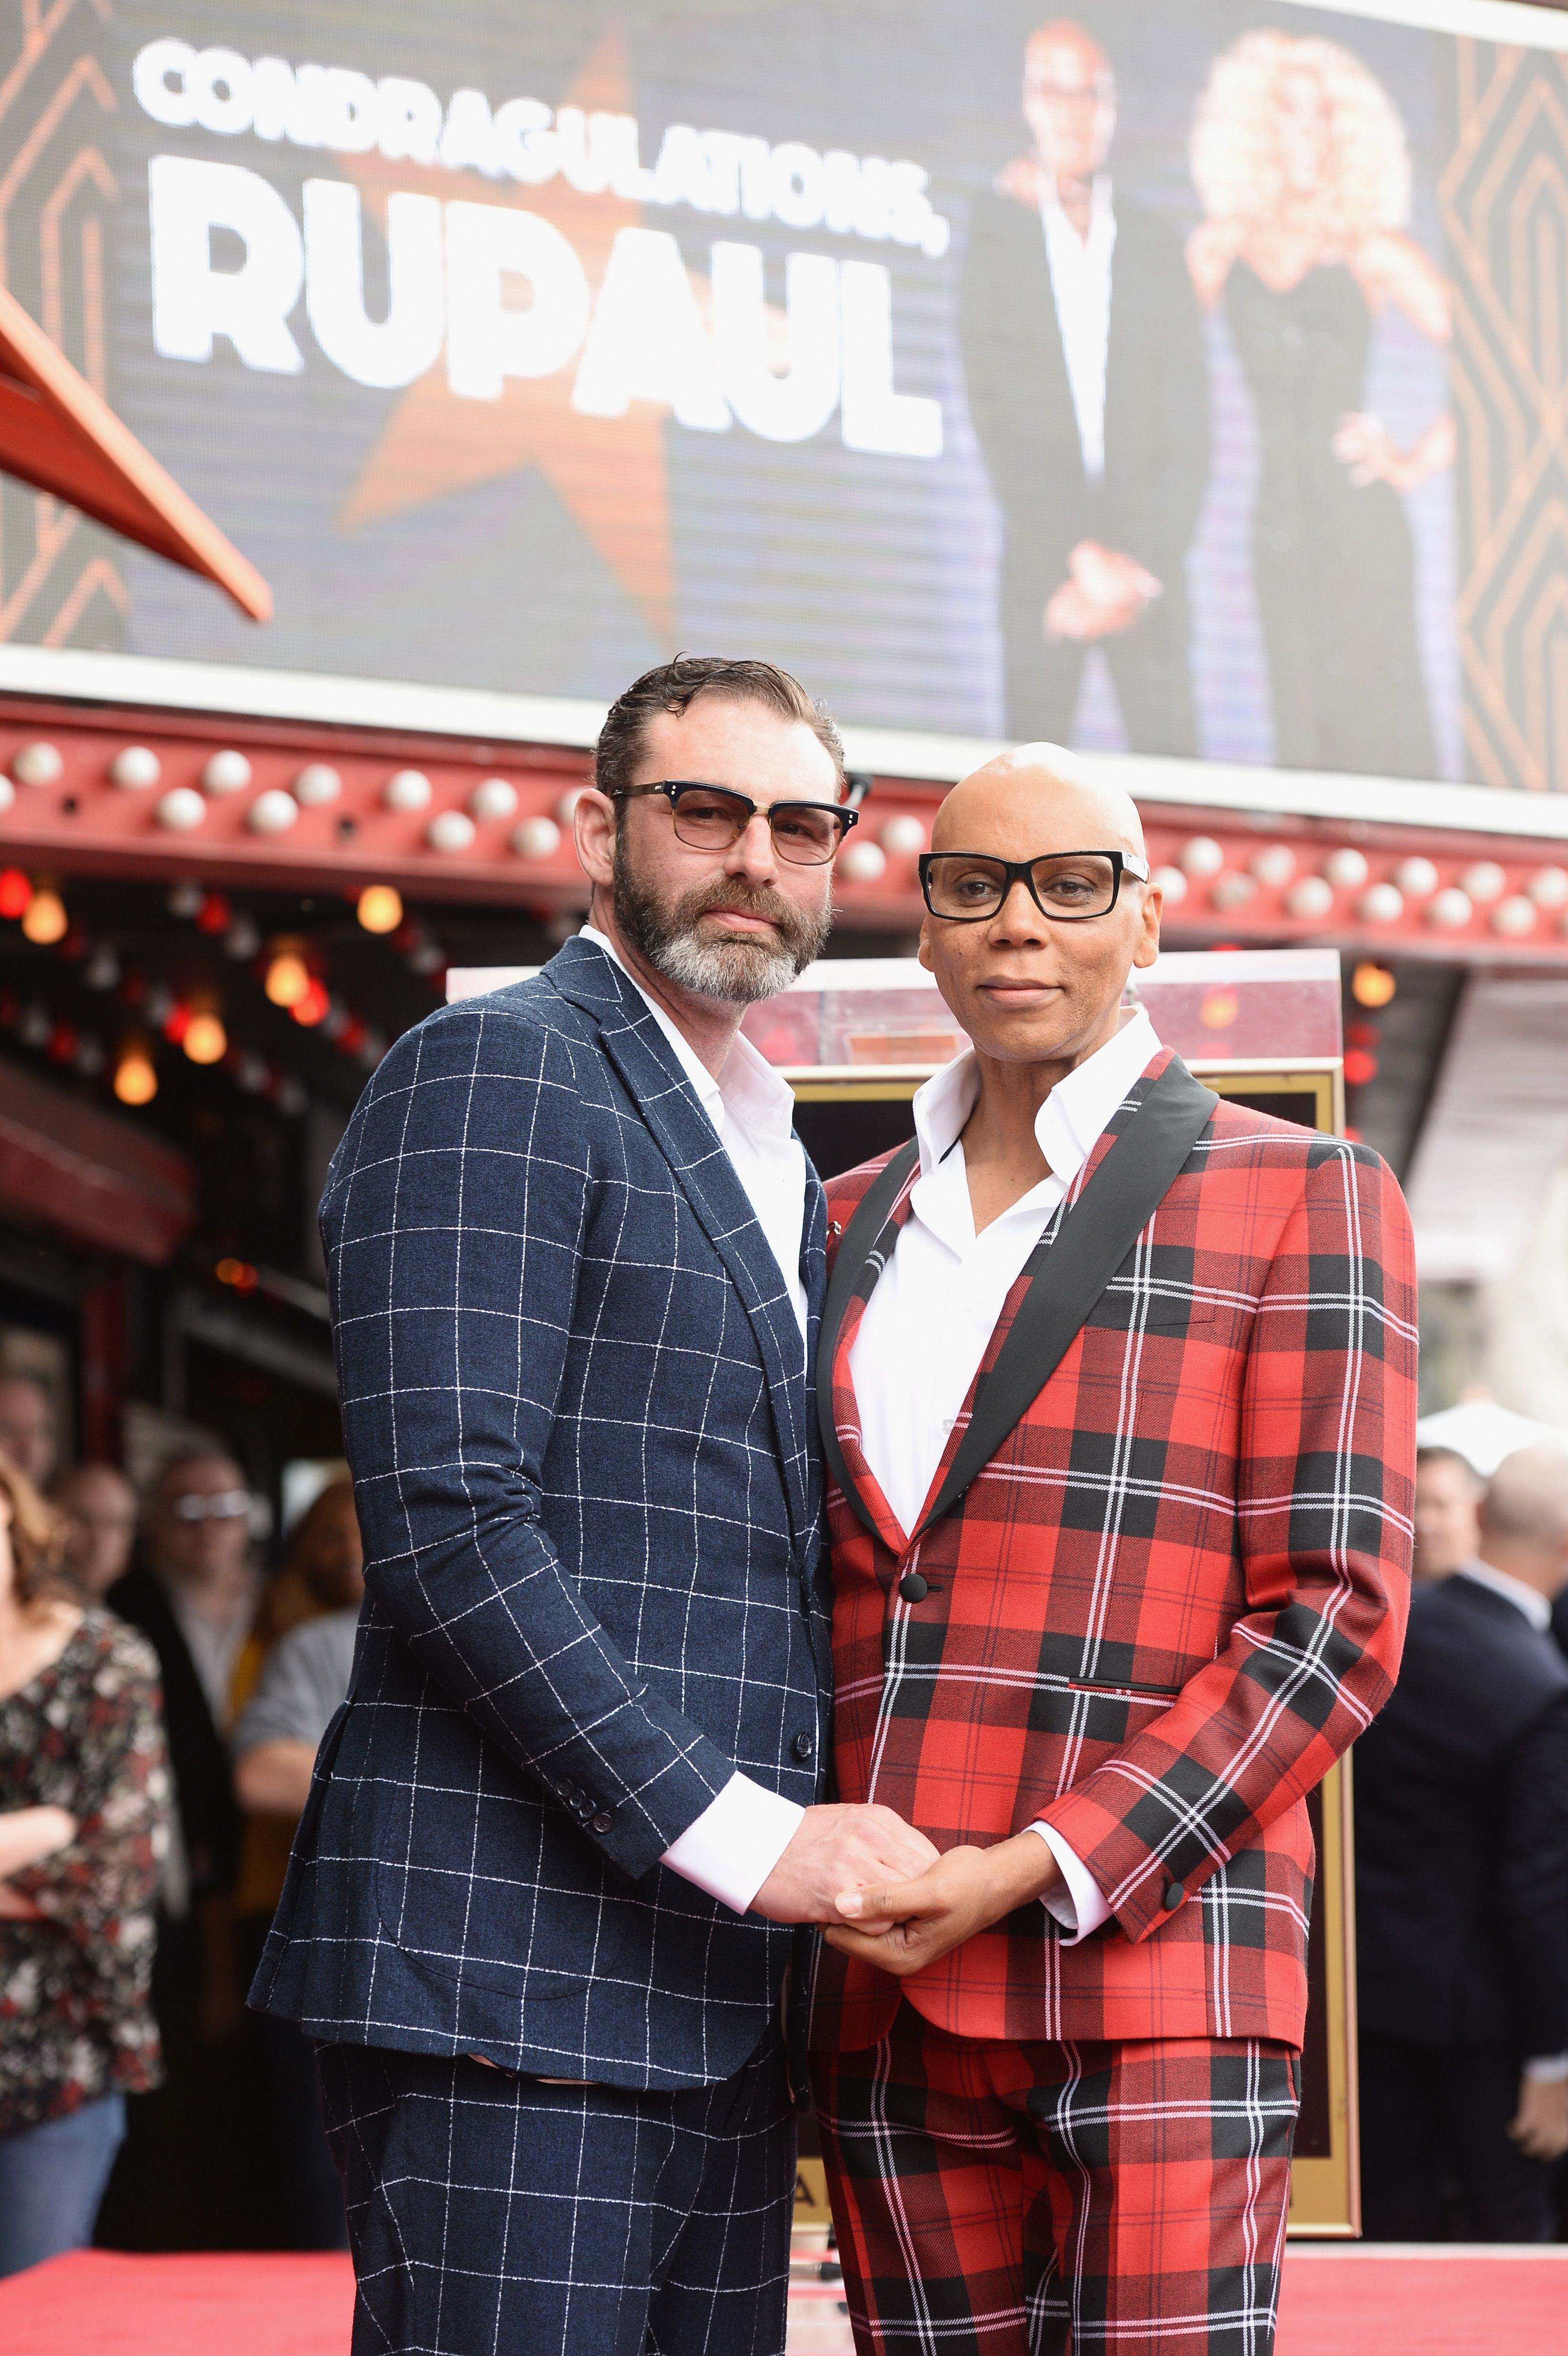 Georges LeBar and RuPaul at the latter's star ceremony on The Hollywood Walk of Fame on March 16, 2018, in Hollywood, California | Photo: Amanda Edwards/Getty Images